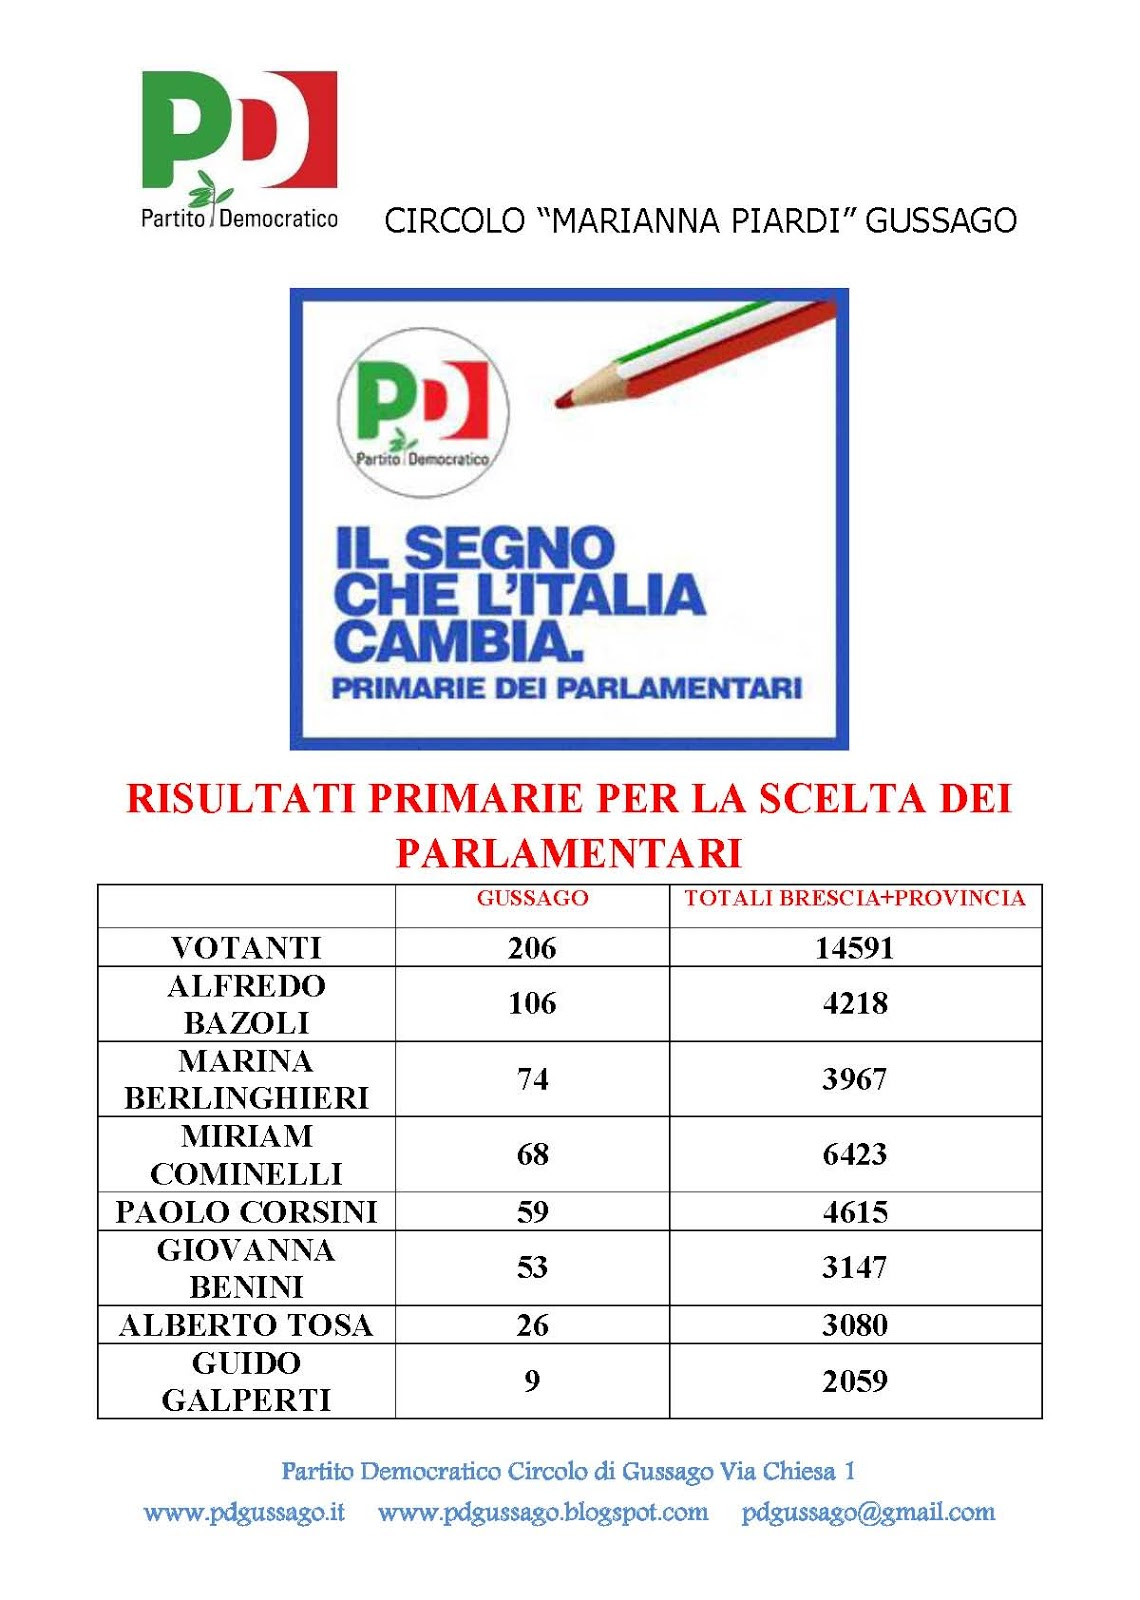 Pd partito democratico circolo di gussago 2012 for Numero parlamentari pd